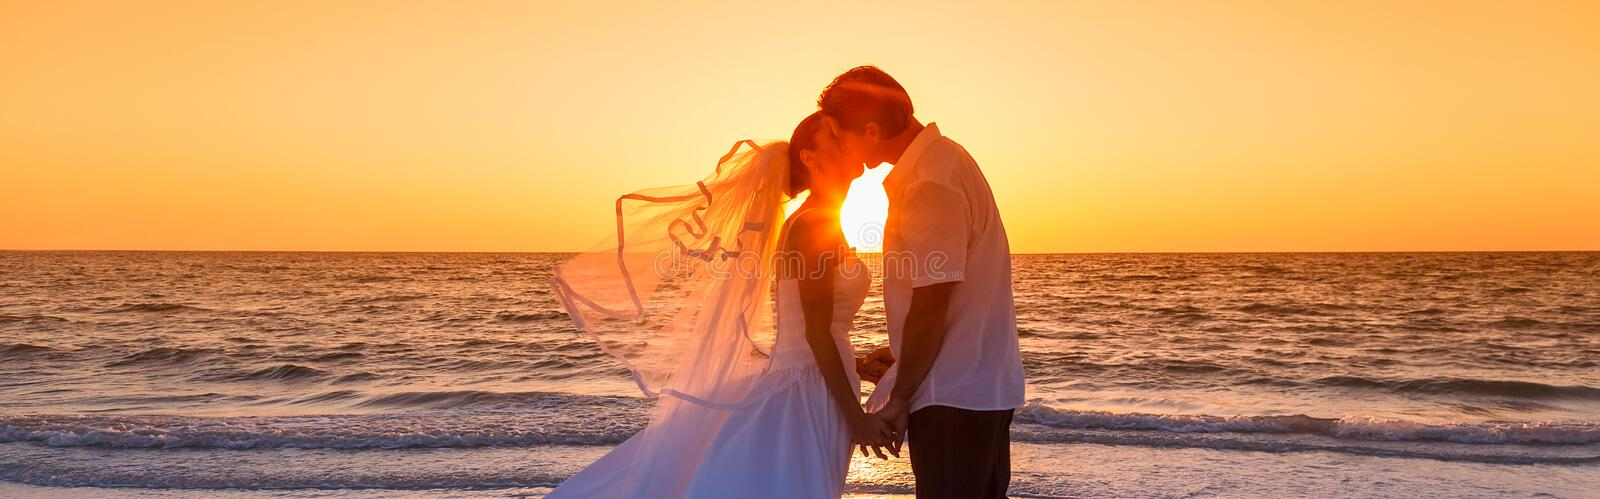 Panorama de mariage de plage de Married Couple Sunset de jeunes mariés images stock